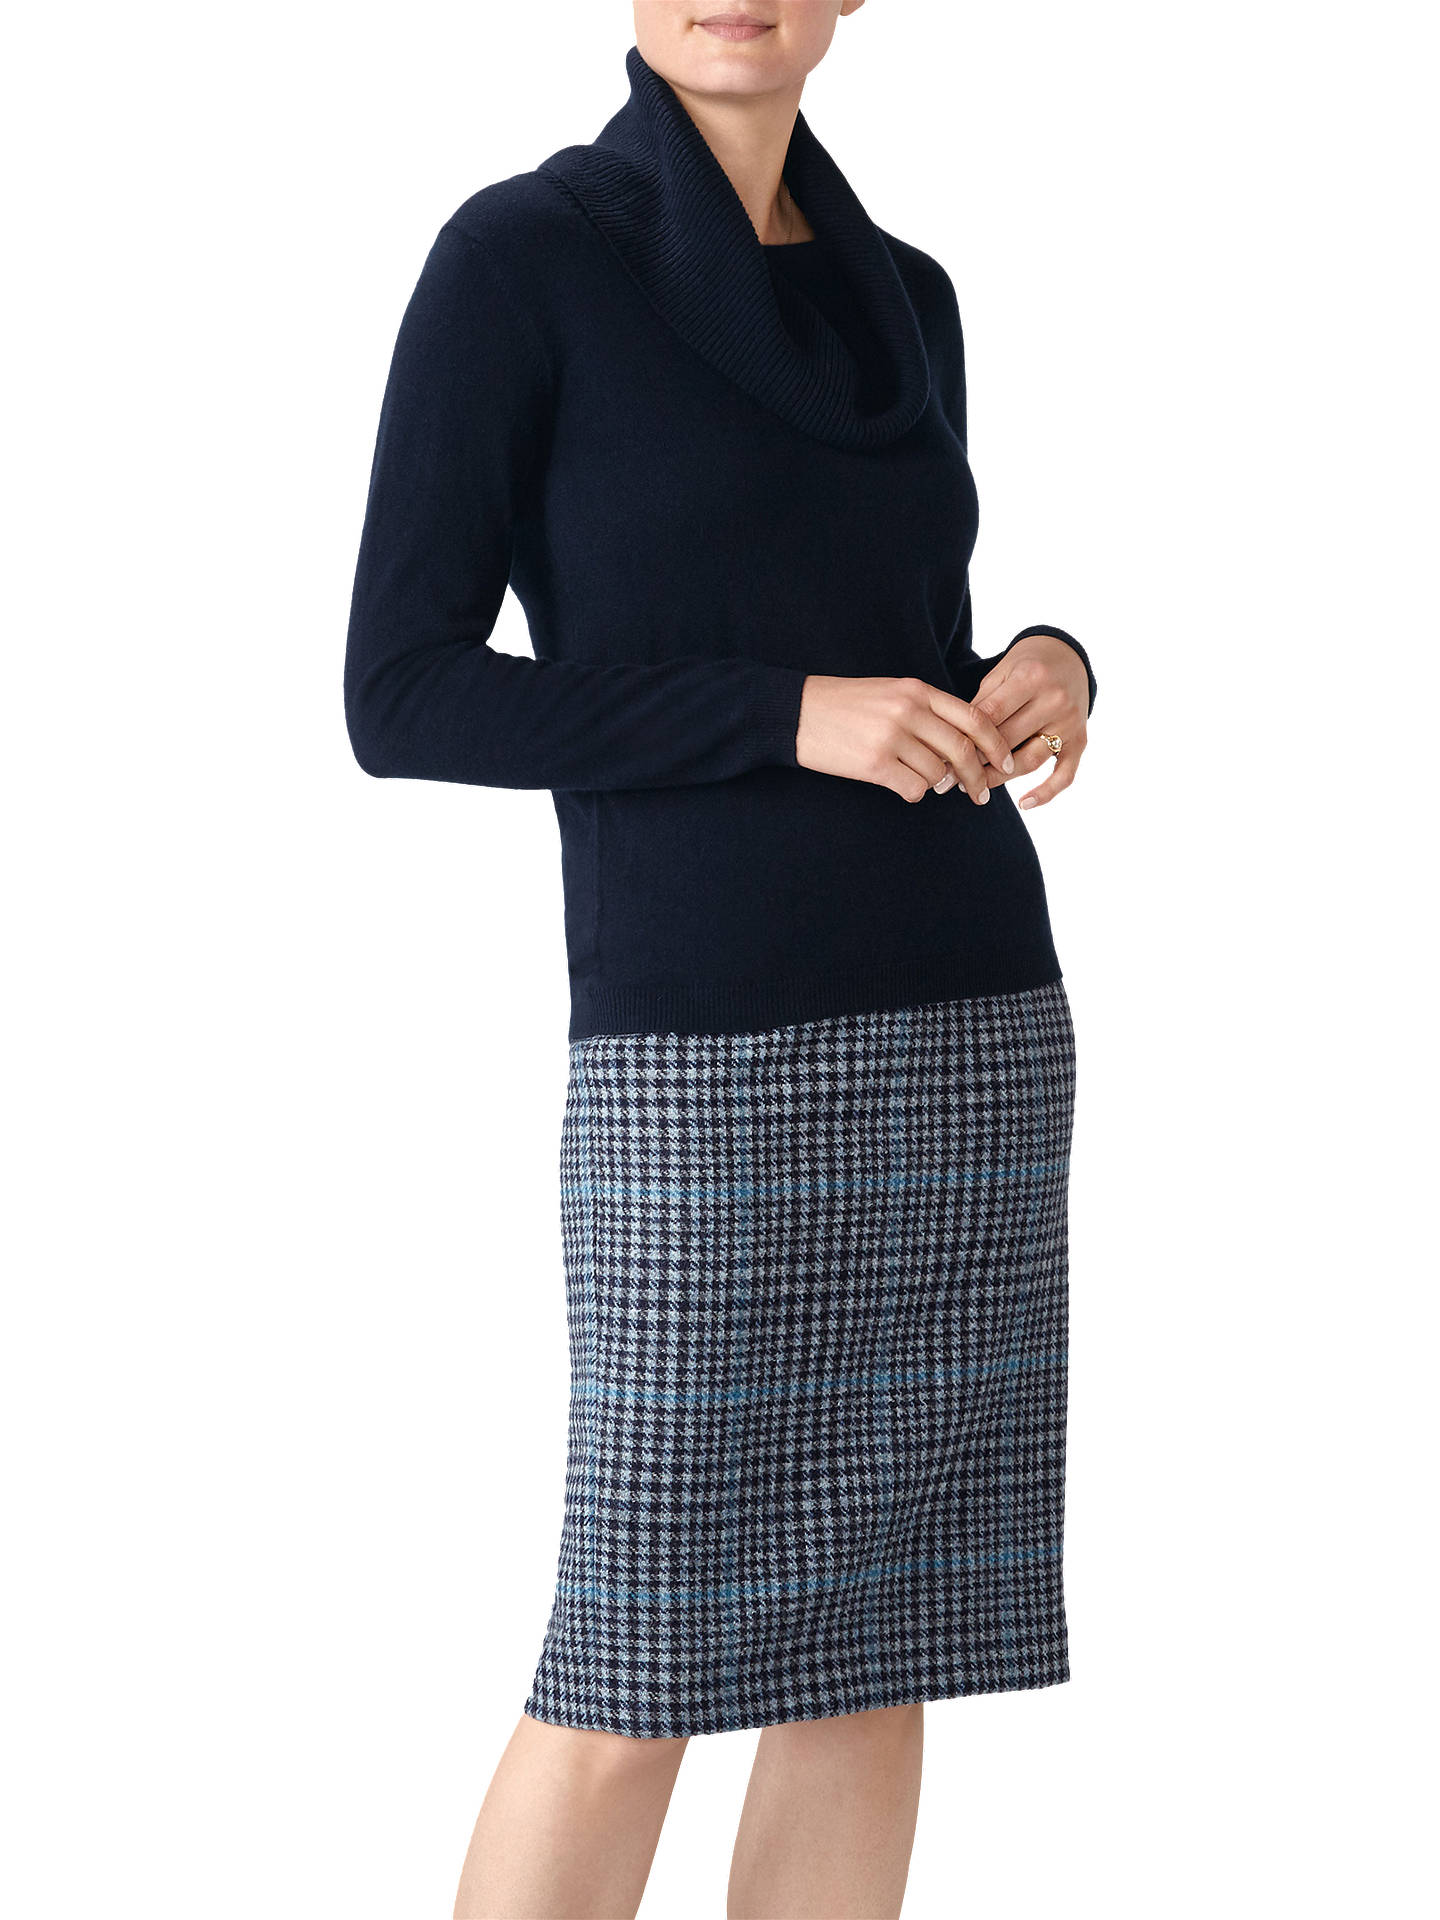 BuyPure Collection Cashmere Cowl Neck Sweater, Navy, 8 Online at johnlewis.com